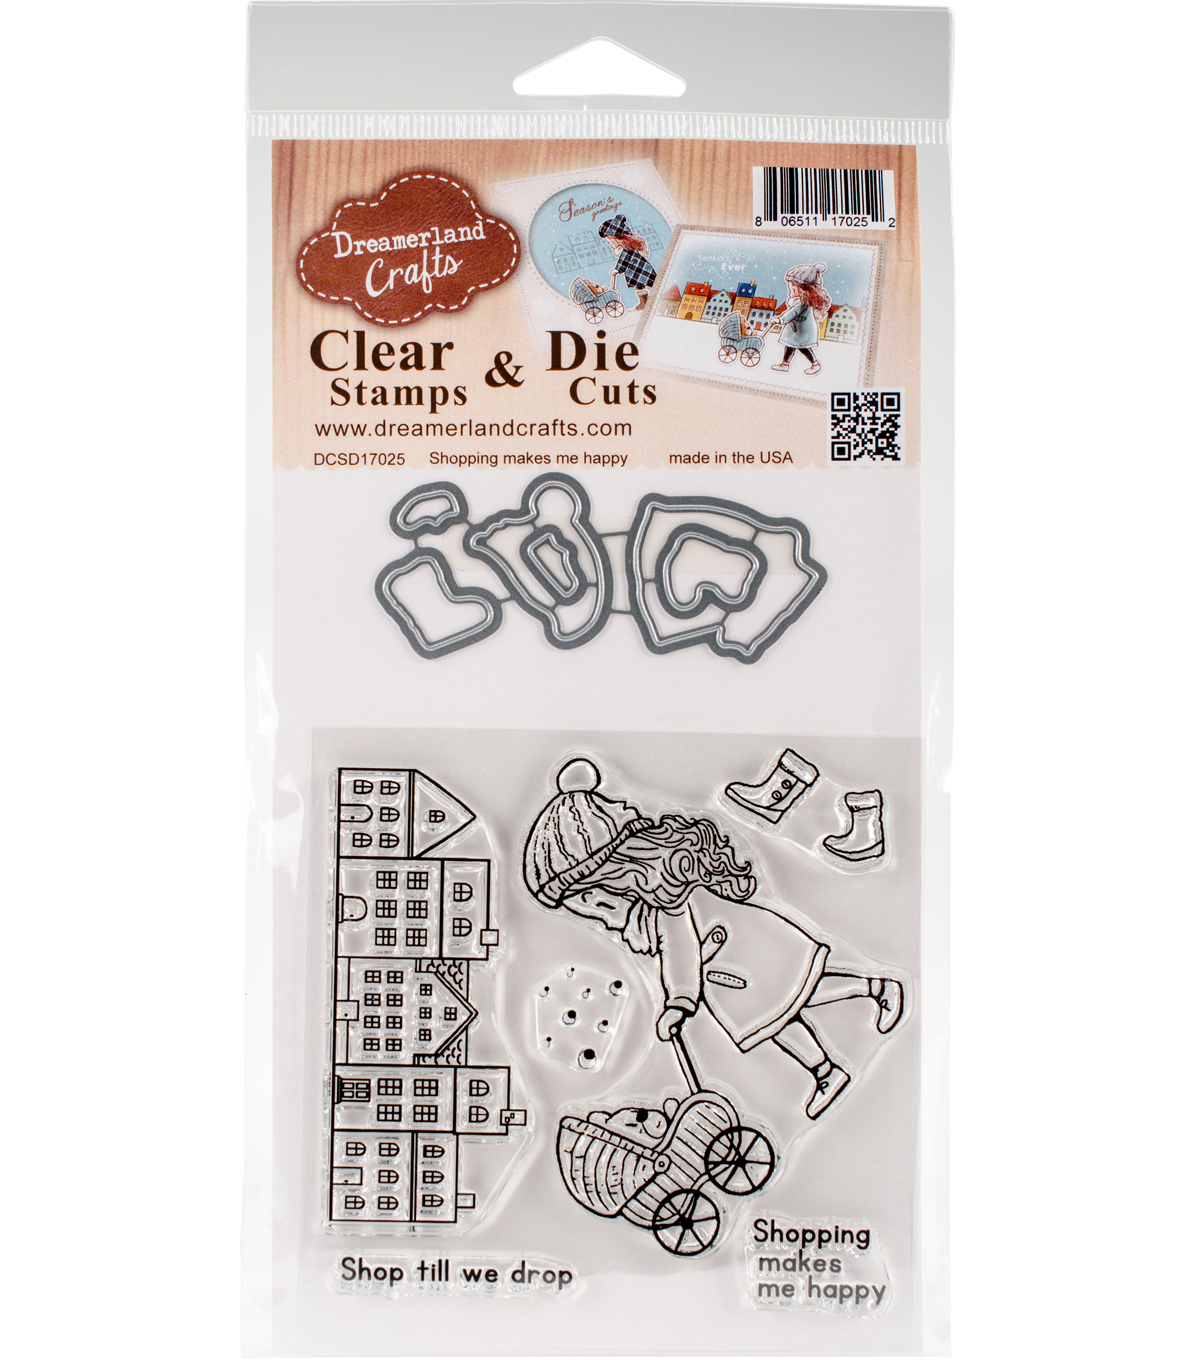 Dreamerland Crafts Clear Stamp & Die Cut Set-Shopping Makes Me Happy